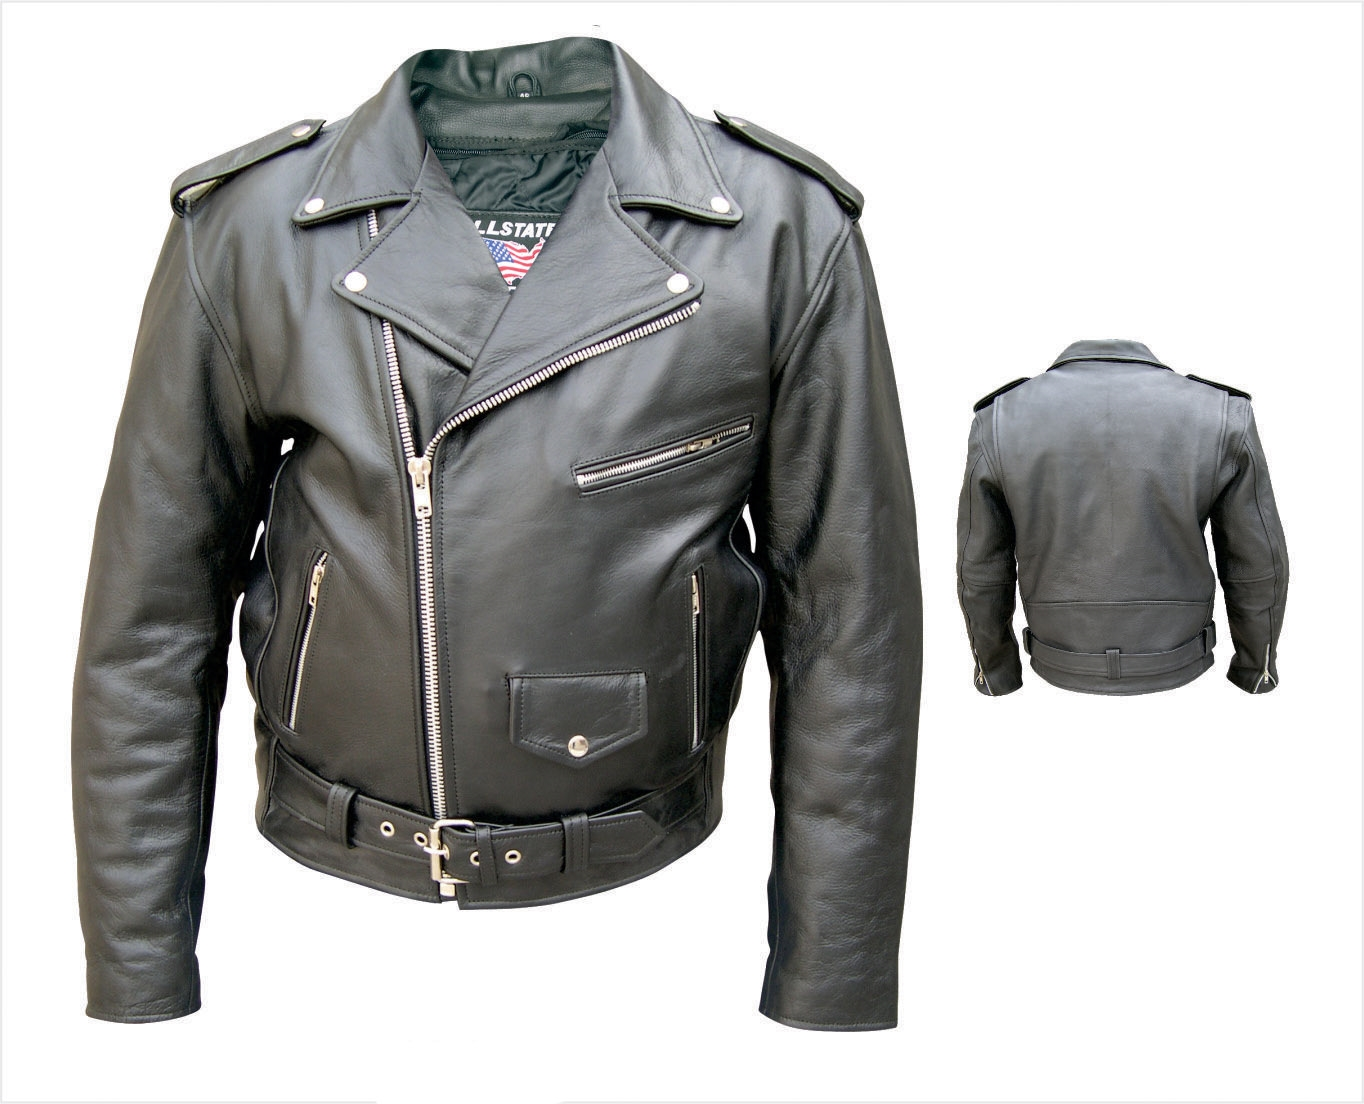 Buffalo Leather pockets /& full sleeve zipout liner Antique Brass Hardware Mens Vented jacket with braid trim